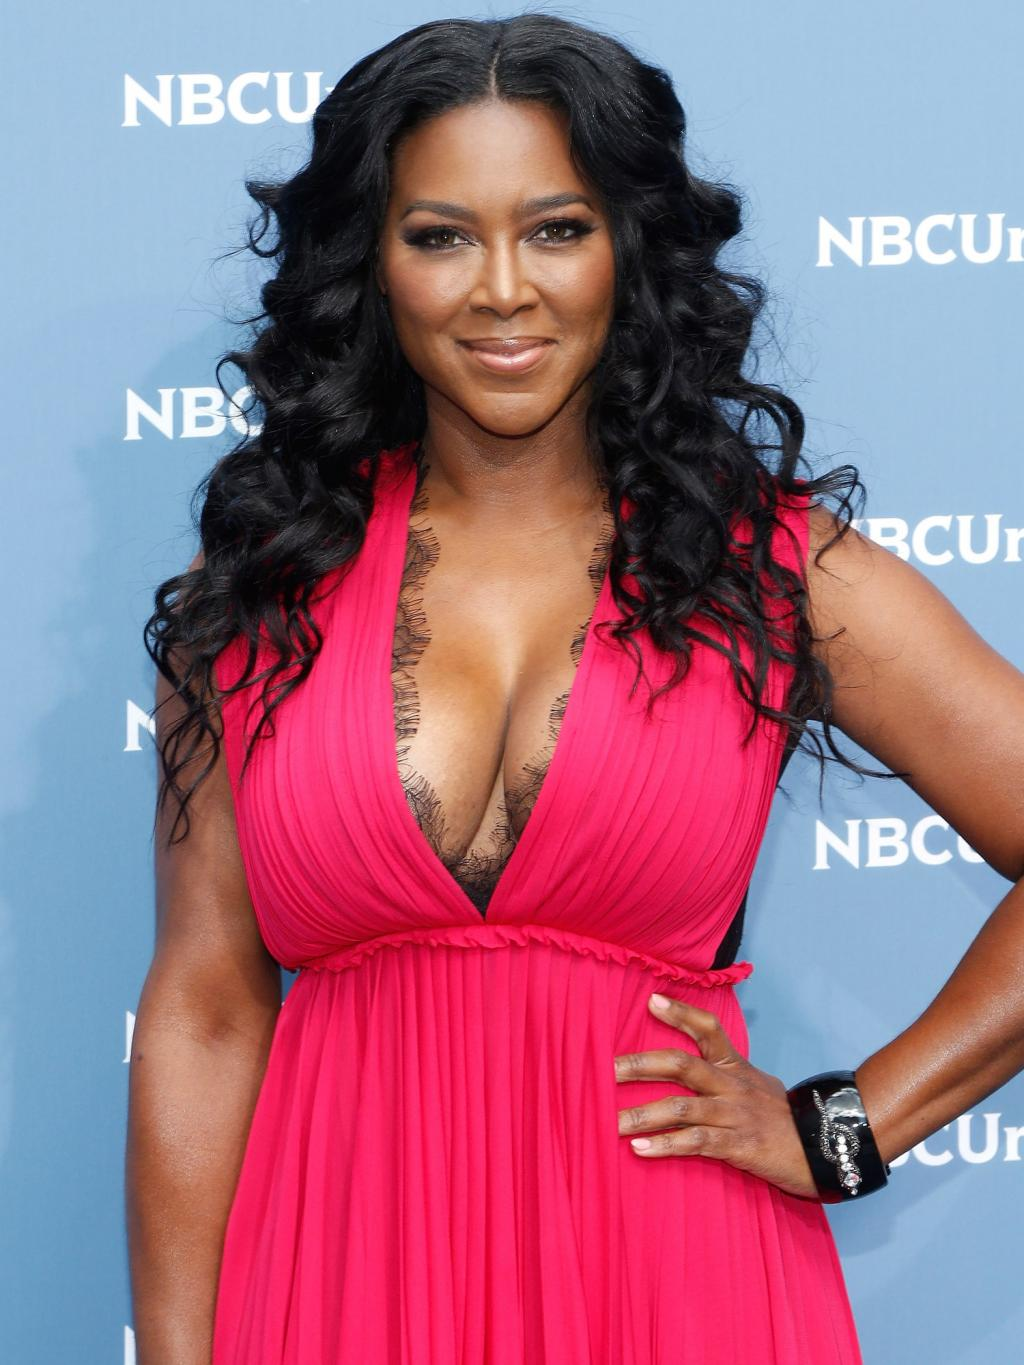 Where Do Real Housewives of Atlanta Kenya Moore and NeNe Leakes Stand Today?